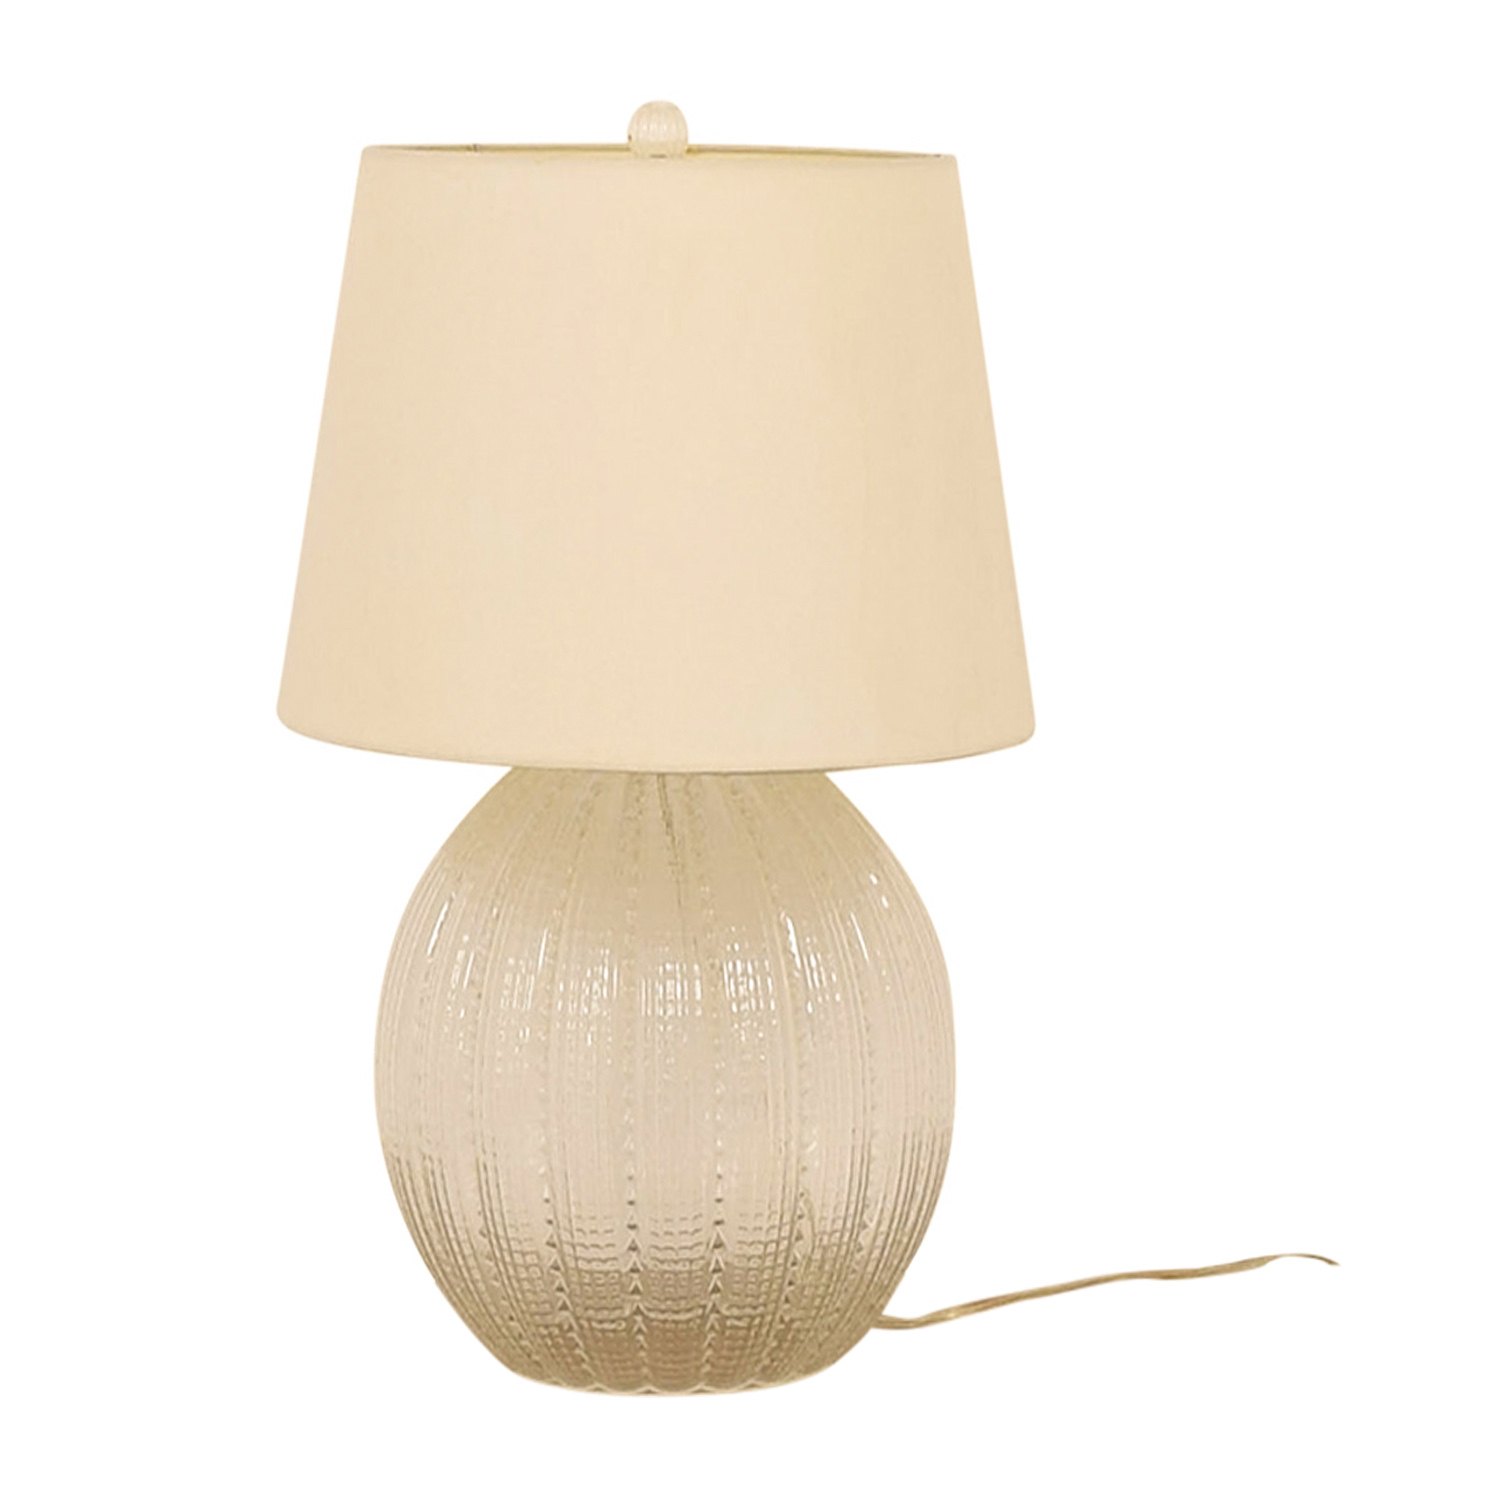 Crate & Barrel Crate & Barrel Glass Lamp and Shade coupon